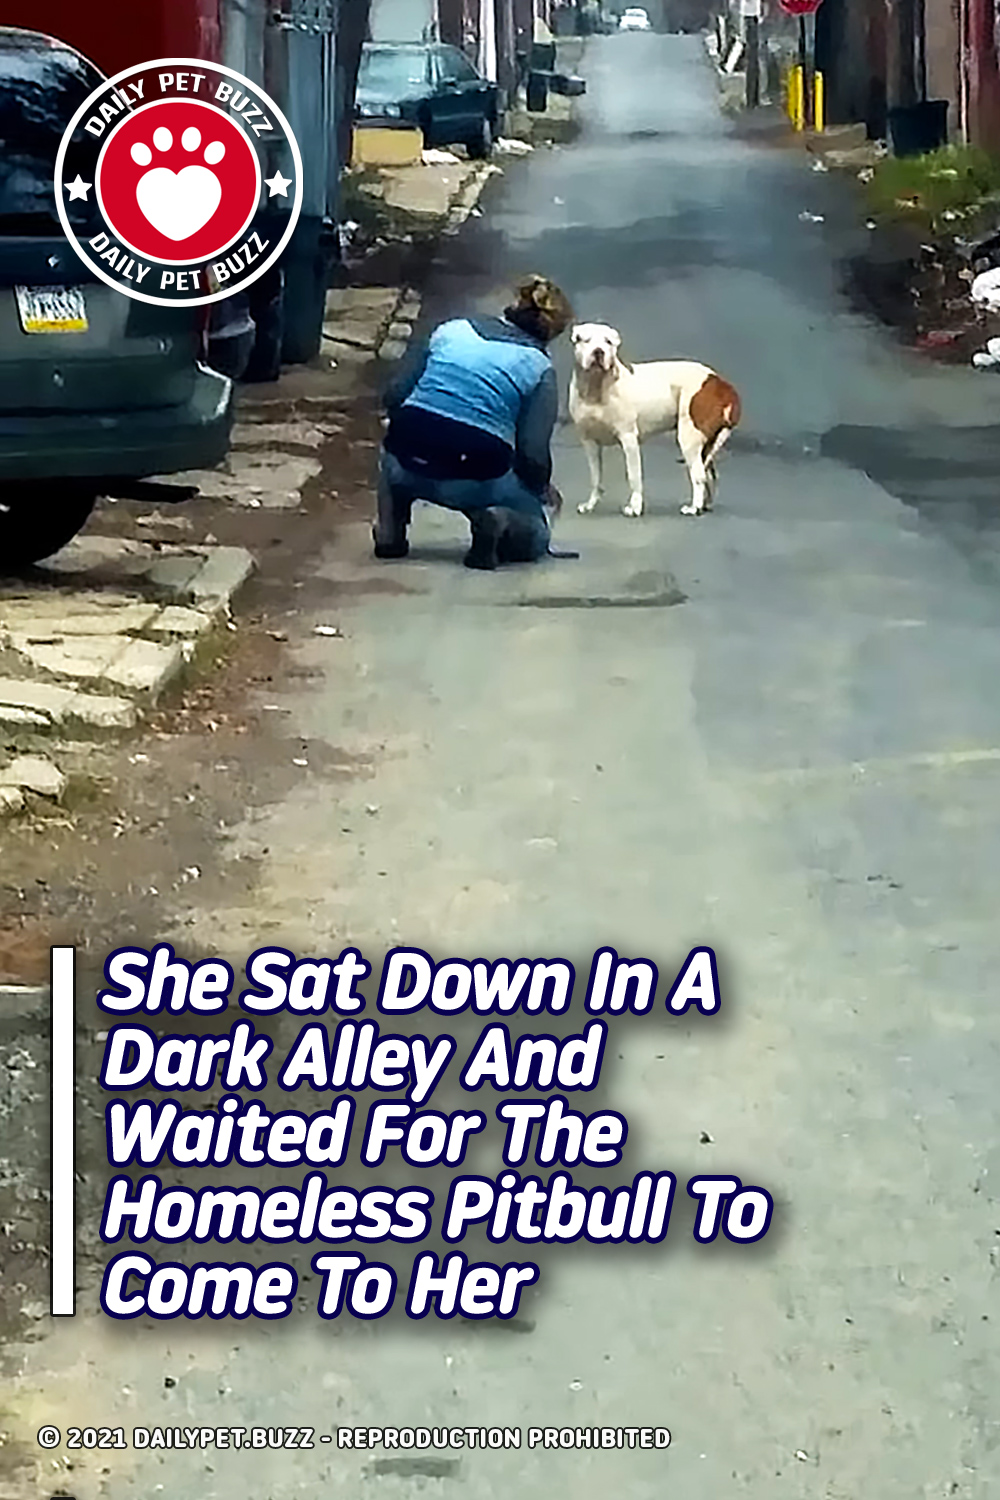 She Sat Down In A Dark Alley And Waited For The Homeless Pitbull To Come To Her